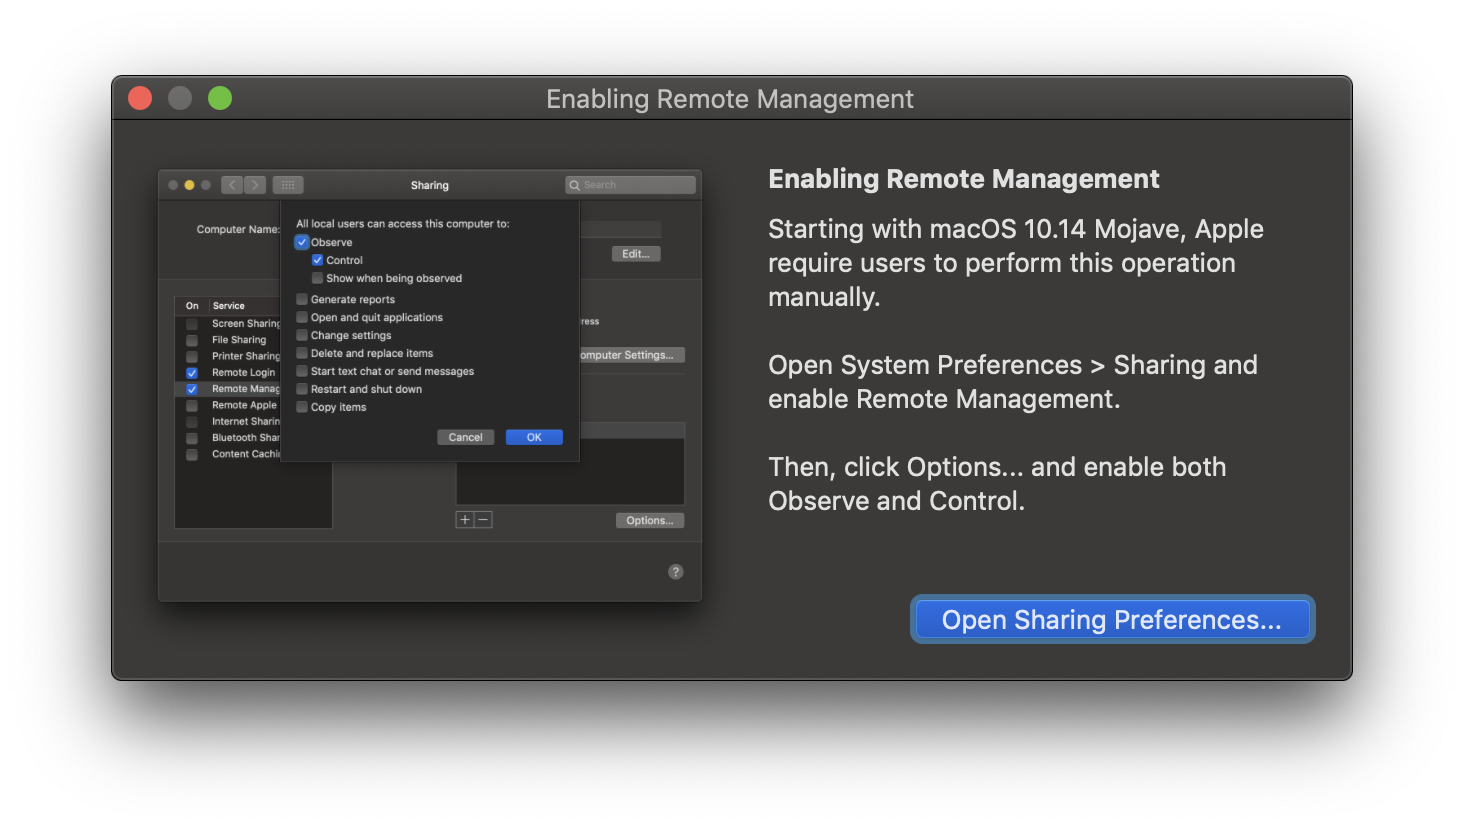 More macOS restrictions...